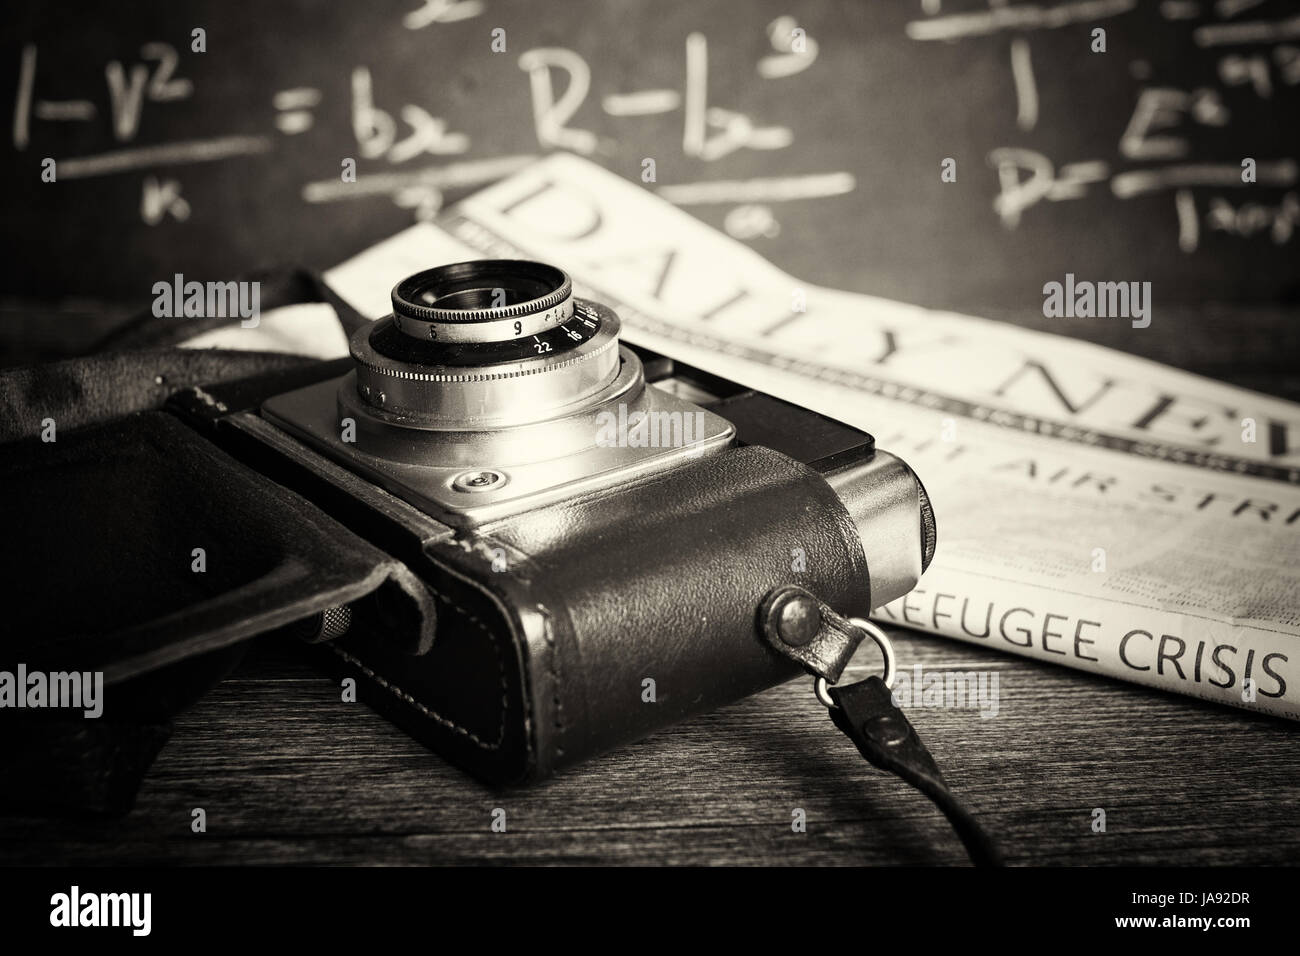 Old vintage retro camera with mocked up daily newspaper - Stock Image